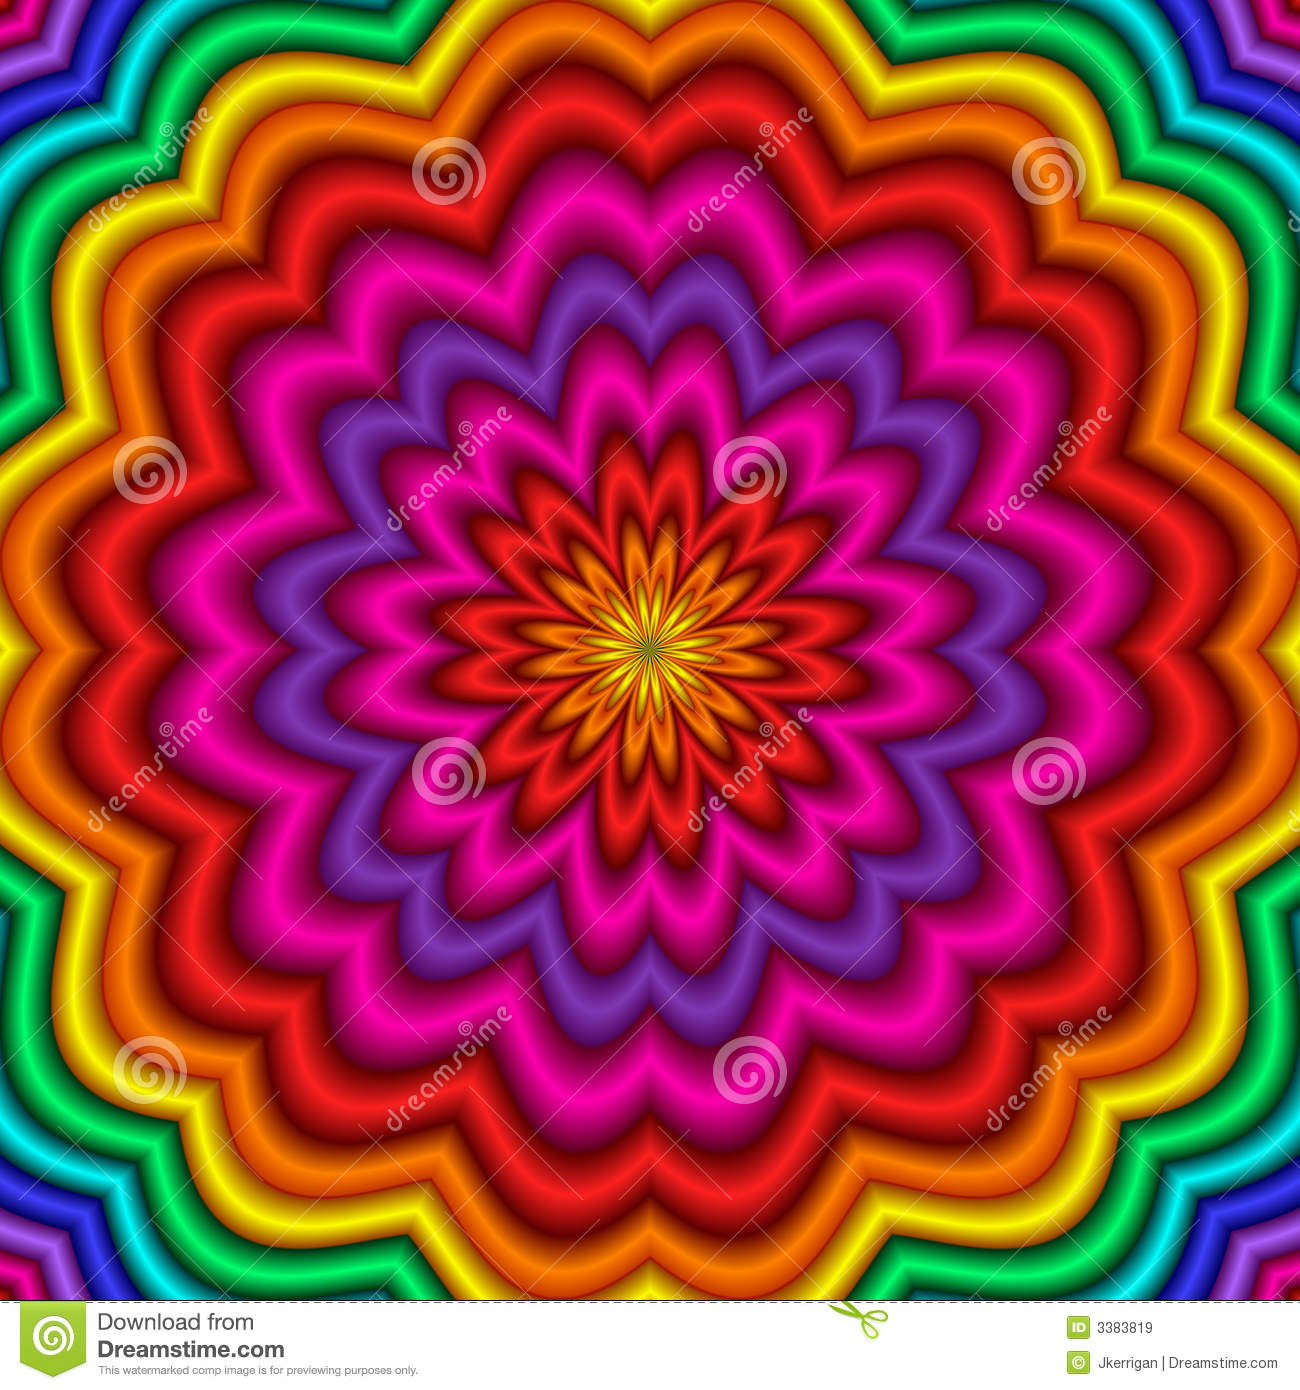 Kaleidoscope Royalty Free Stock Images - Image: 3383819